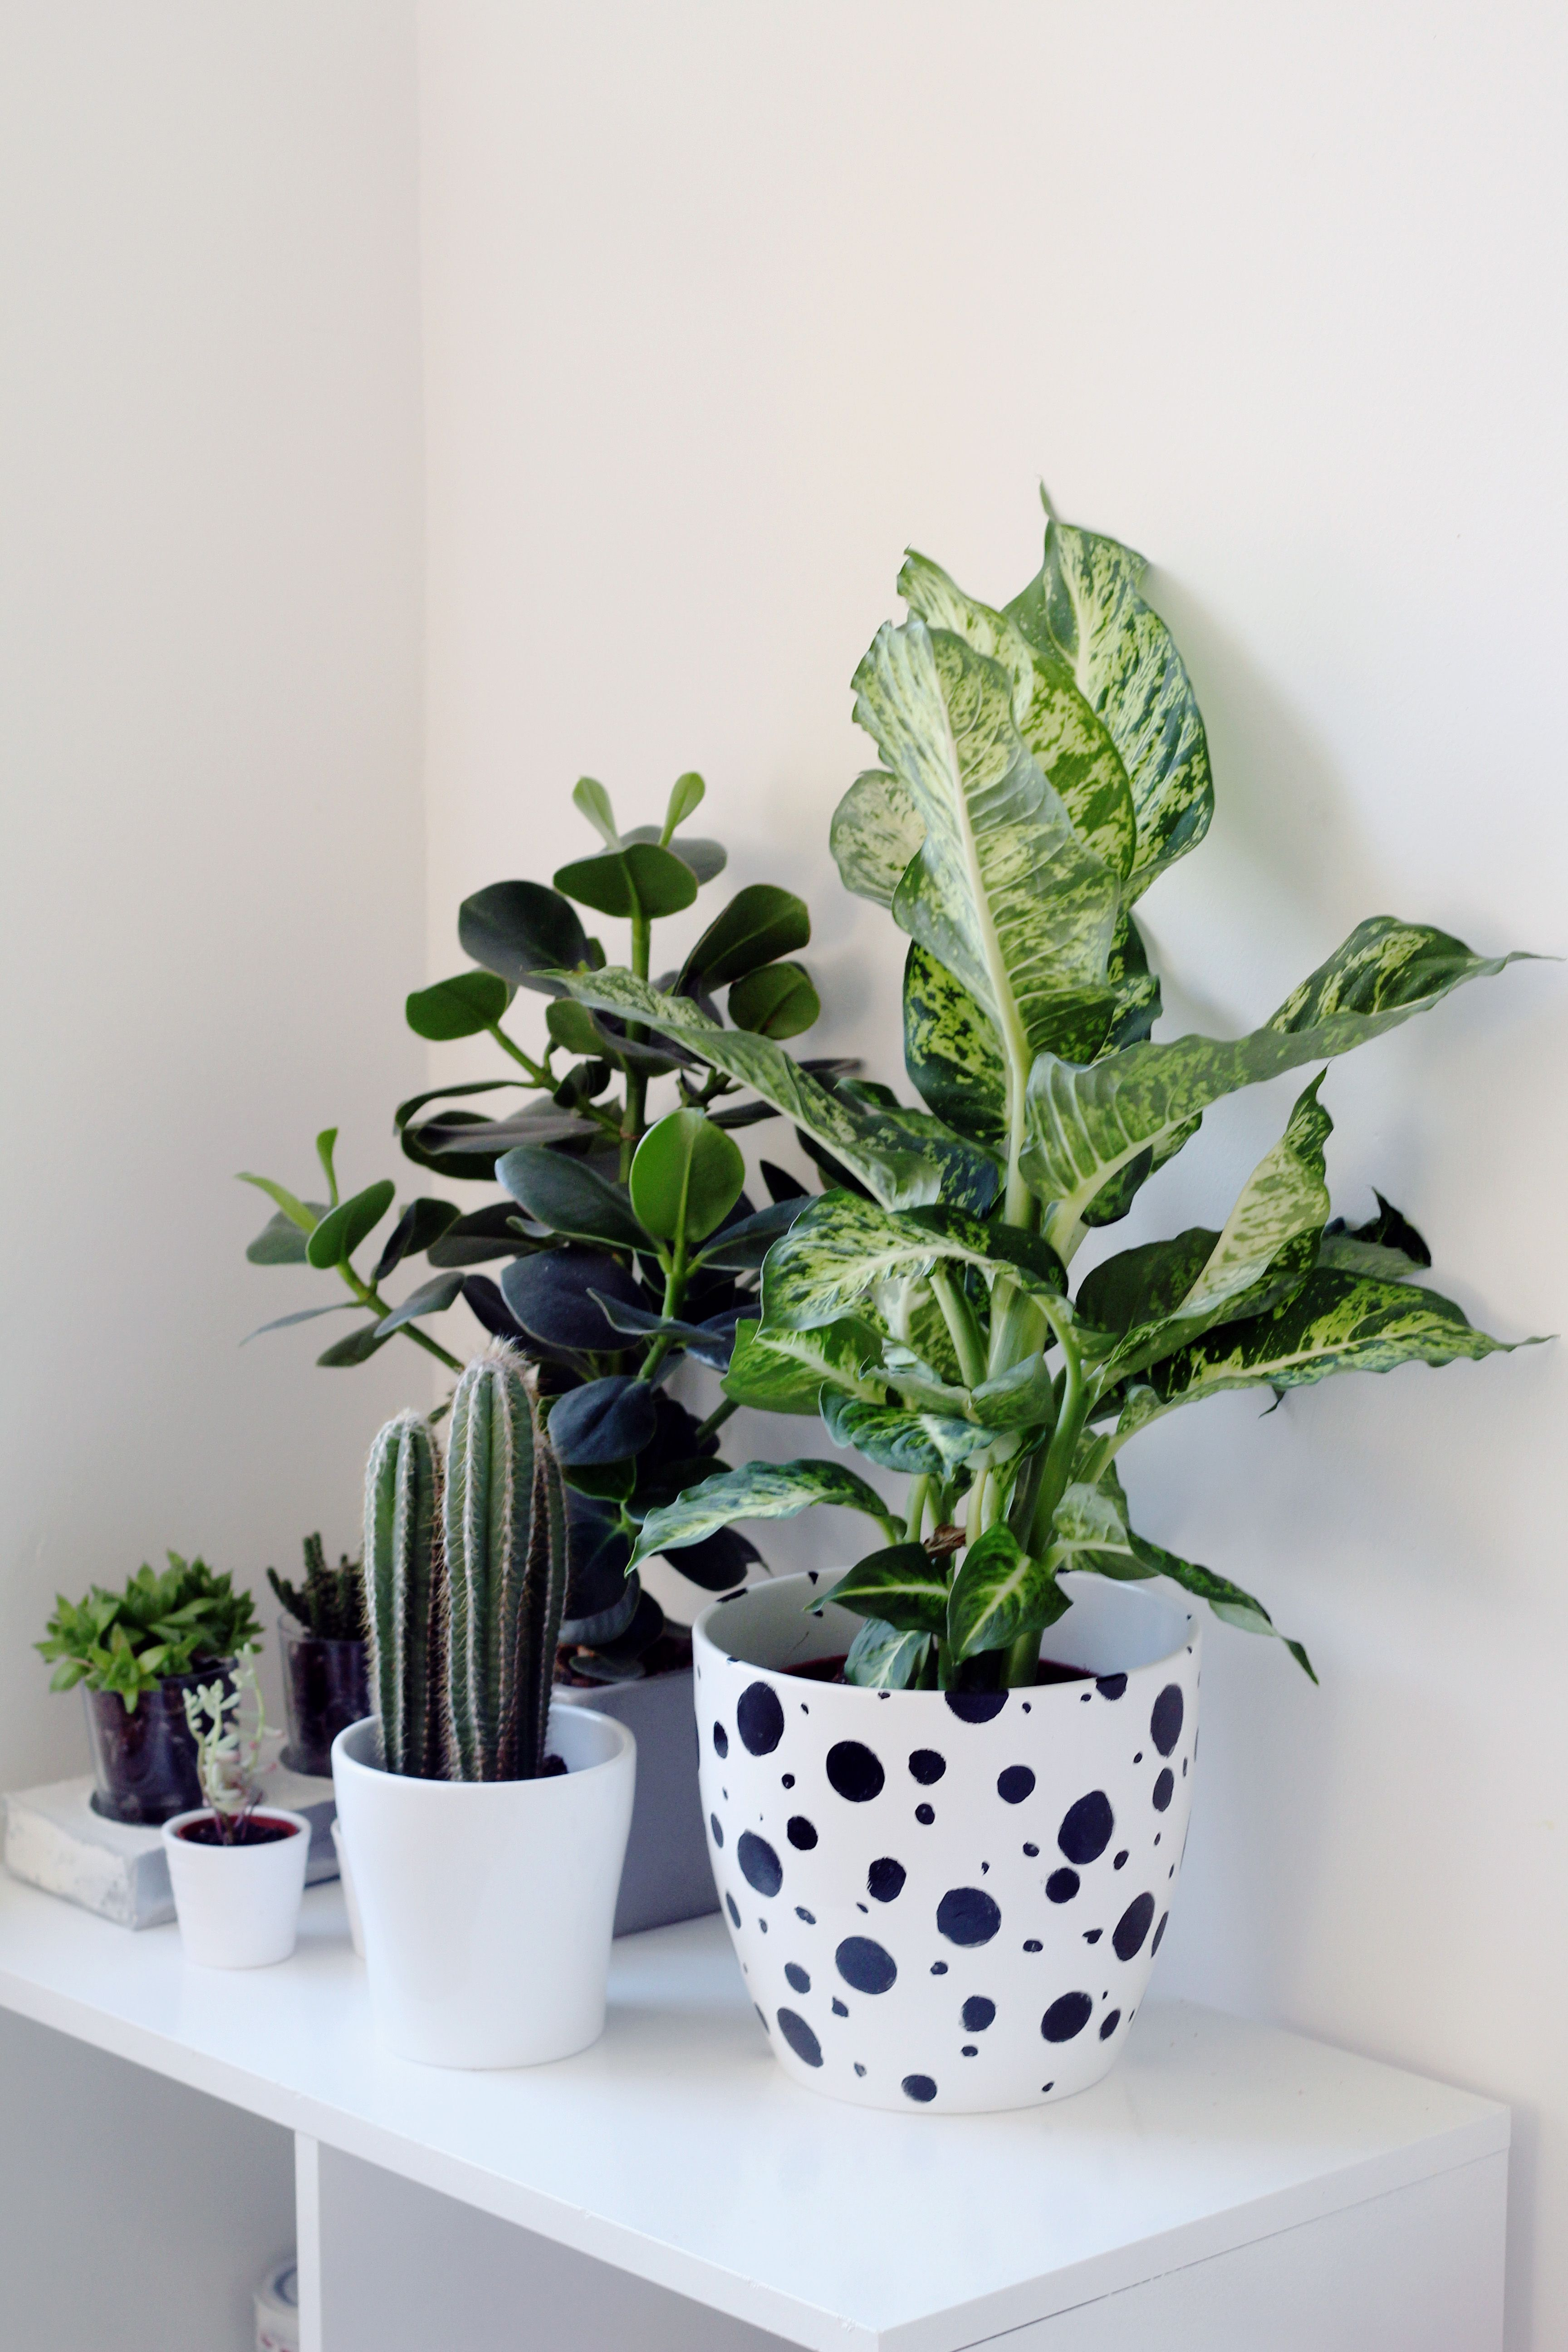 Potted Plants And The Necessary Spring Care: Dalmatian Spotted Planter